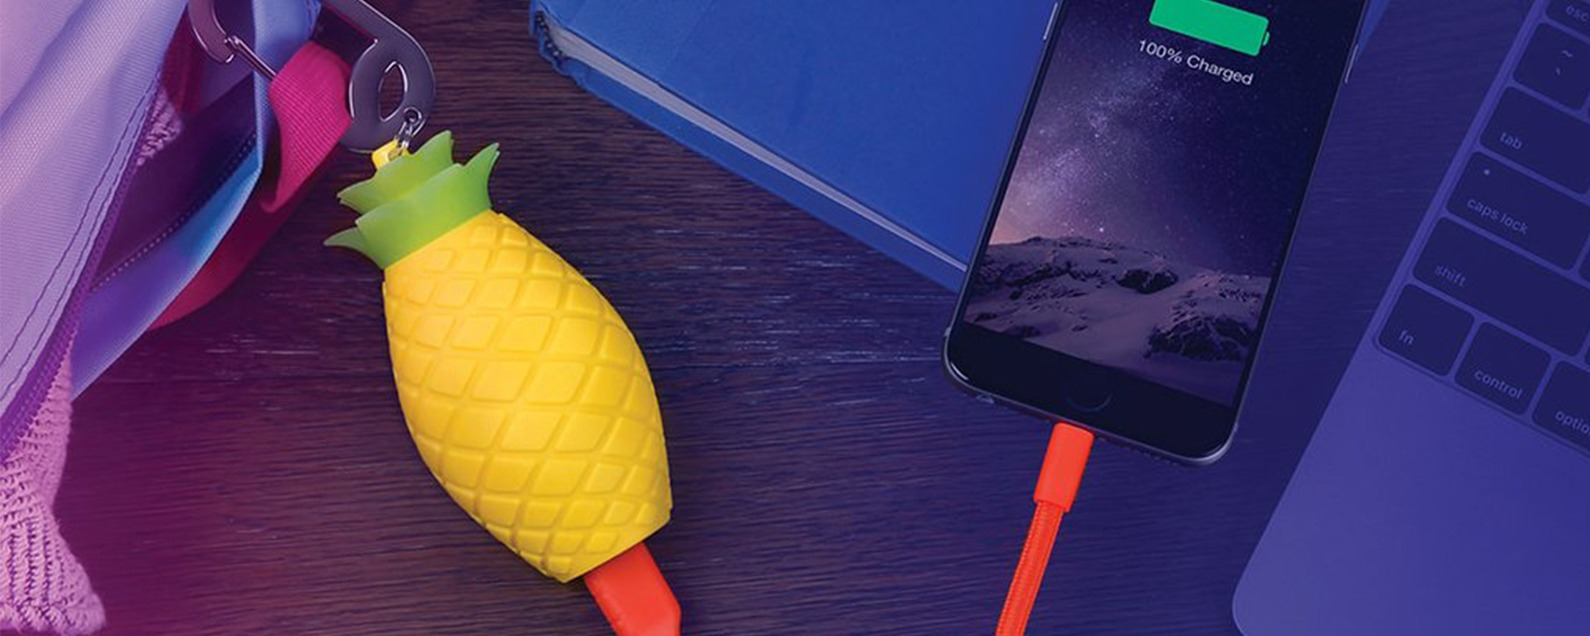 This Pineapple-Shaped Power Bank Adds a Touch of Whimsy to Portable ... 49a9916cbd7d